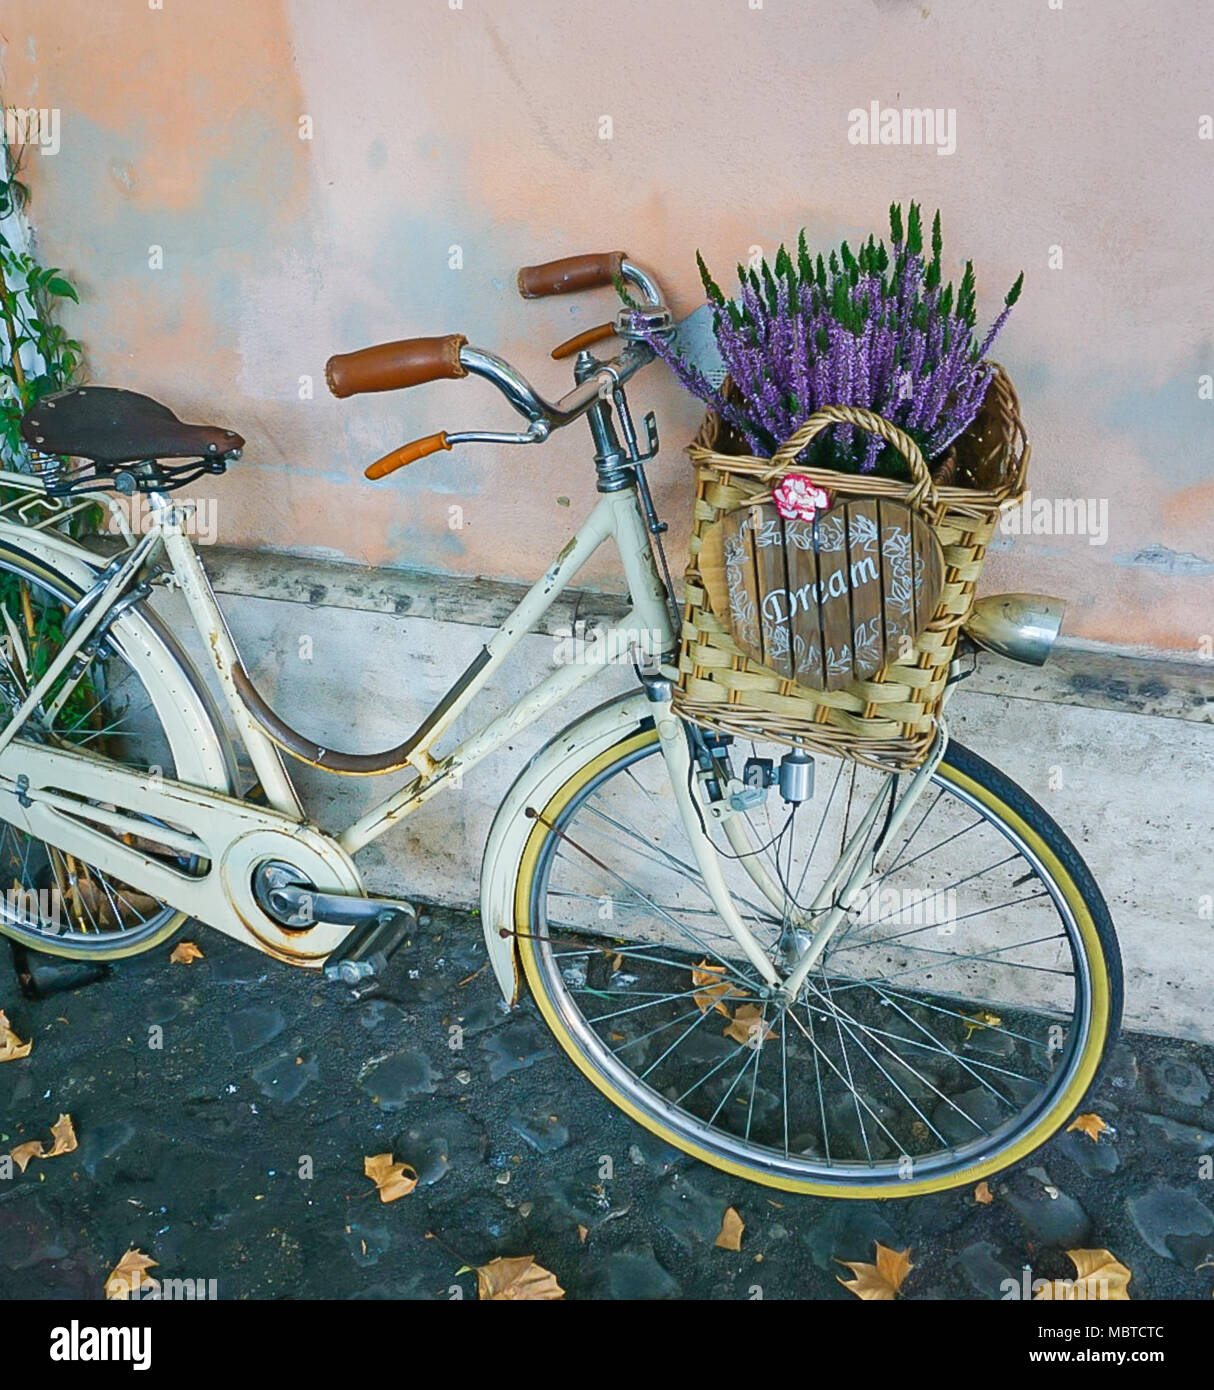 A bike on coblestone sidewalk with basket of Lavender flowers and dream sign Stock Photo